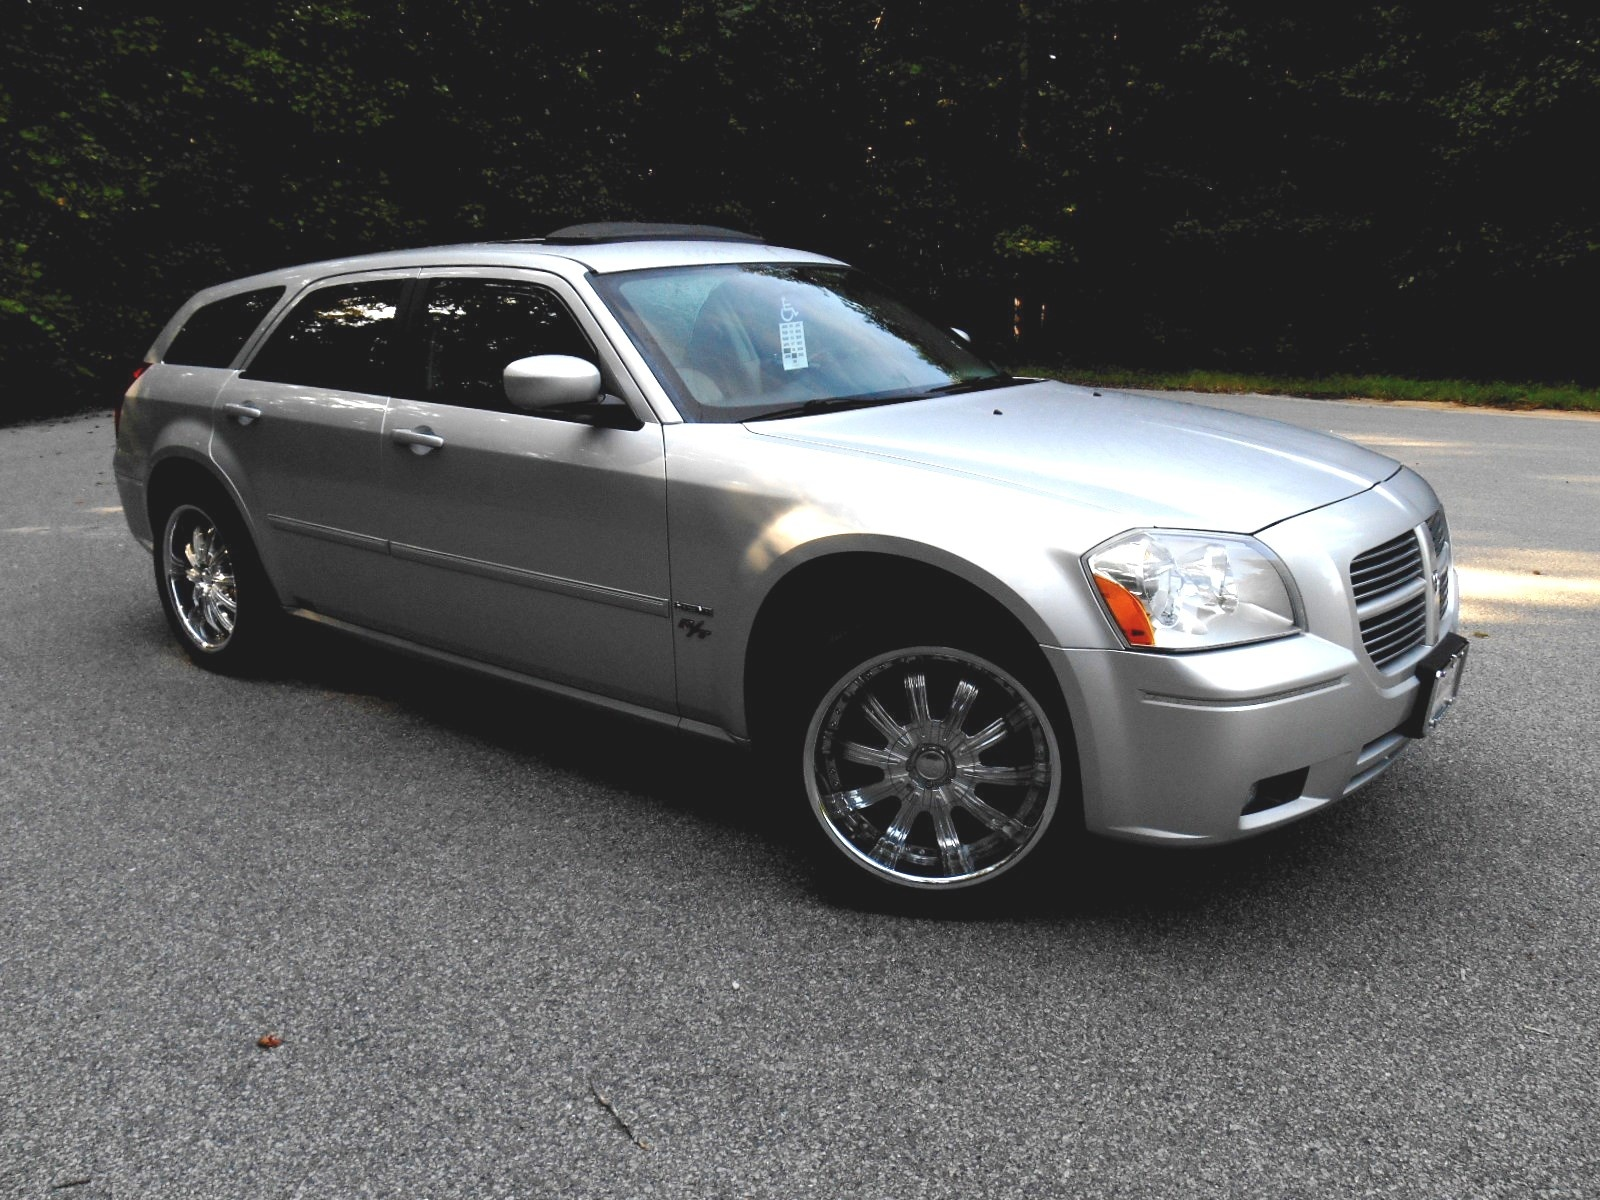 Dodge Magnum Questions - I have a dodge magnum rt 2007 and it turns